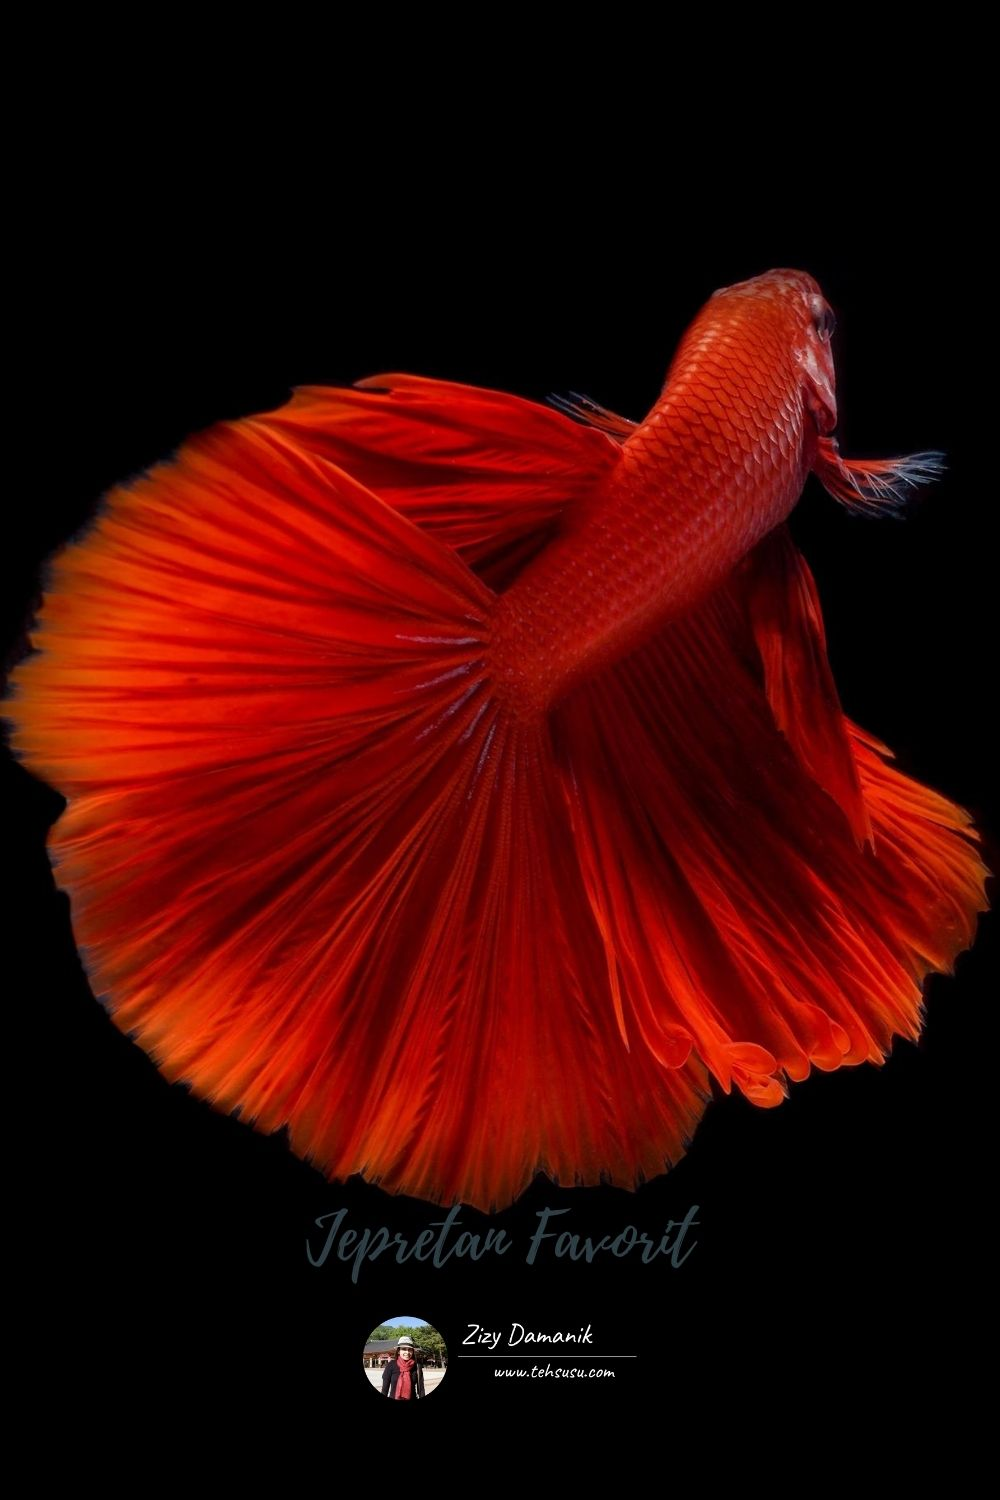 BETTA FISH PHOTOGRAPHY